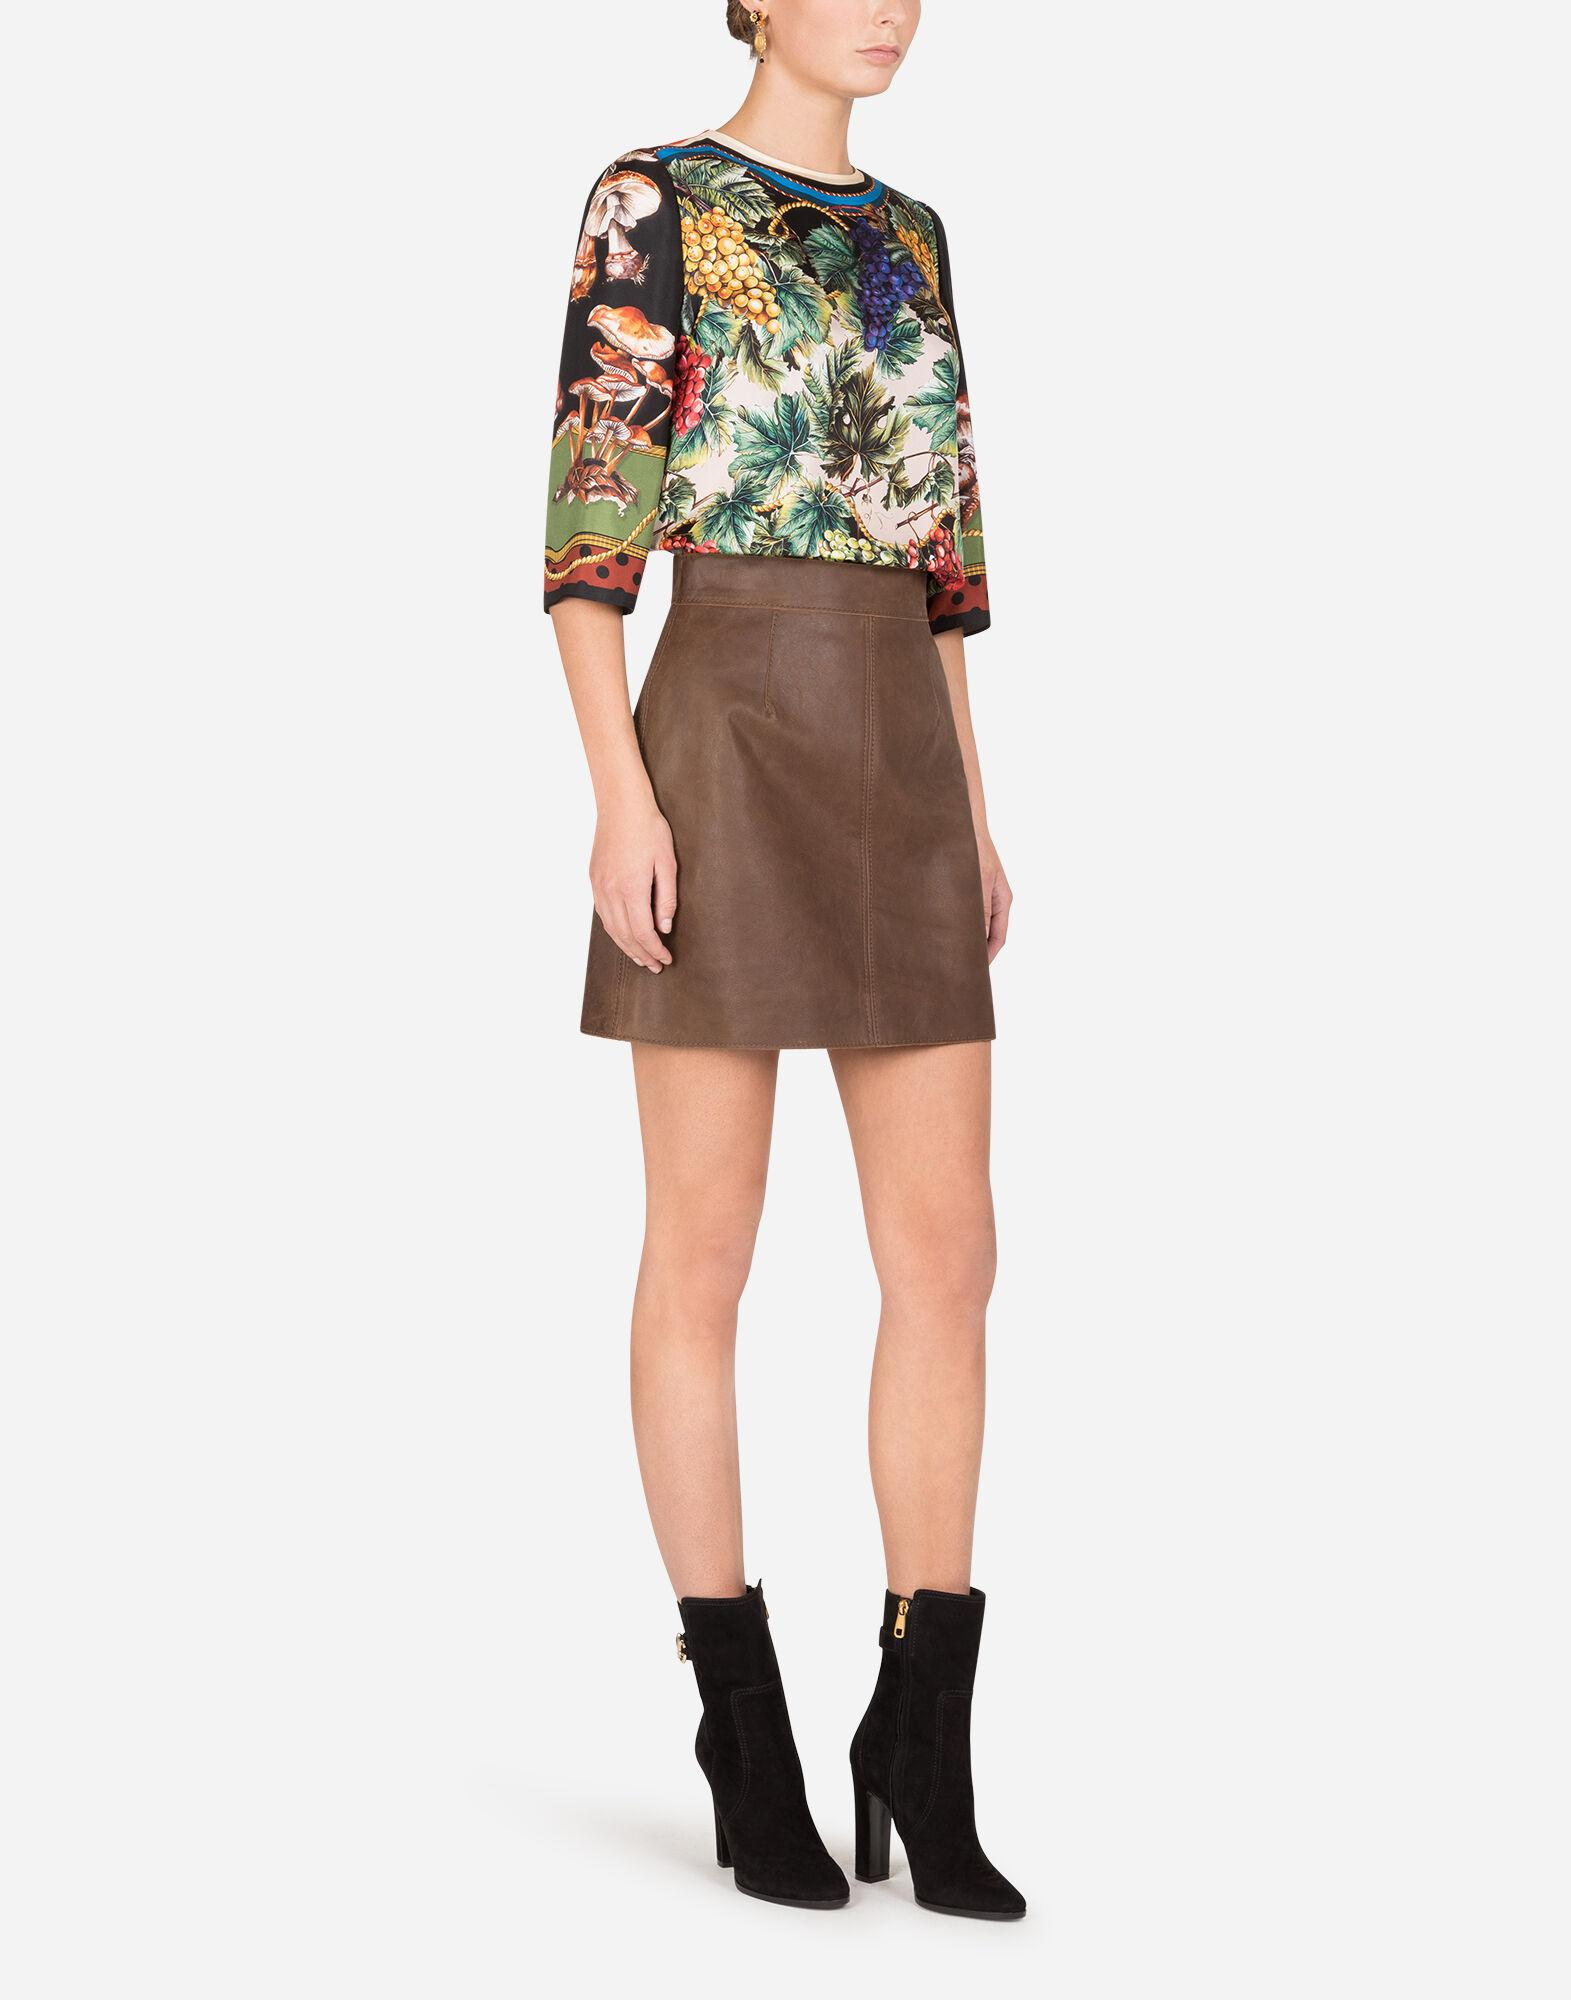 A-line miniskirt in hammered nappa leather 3